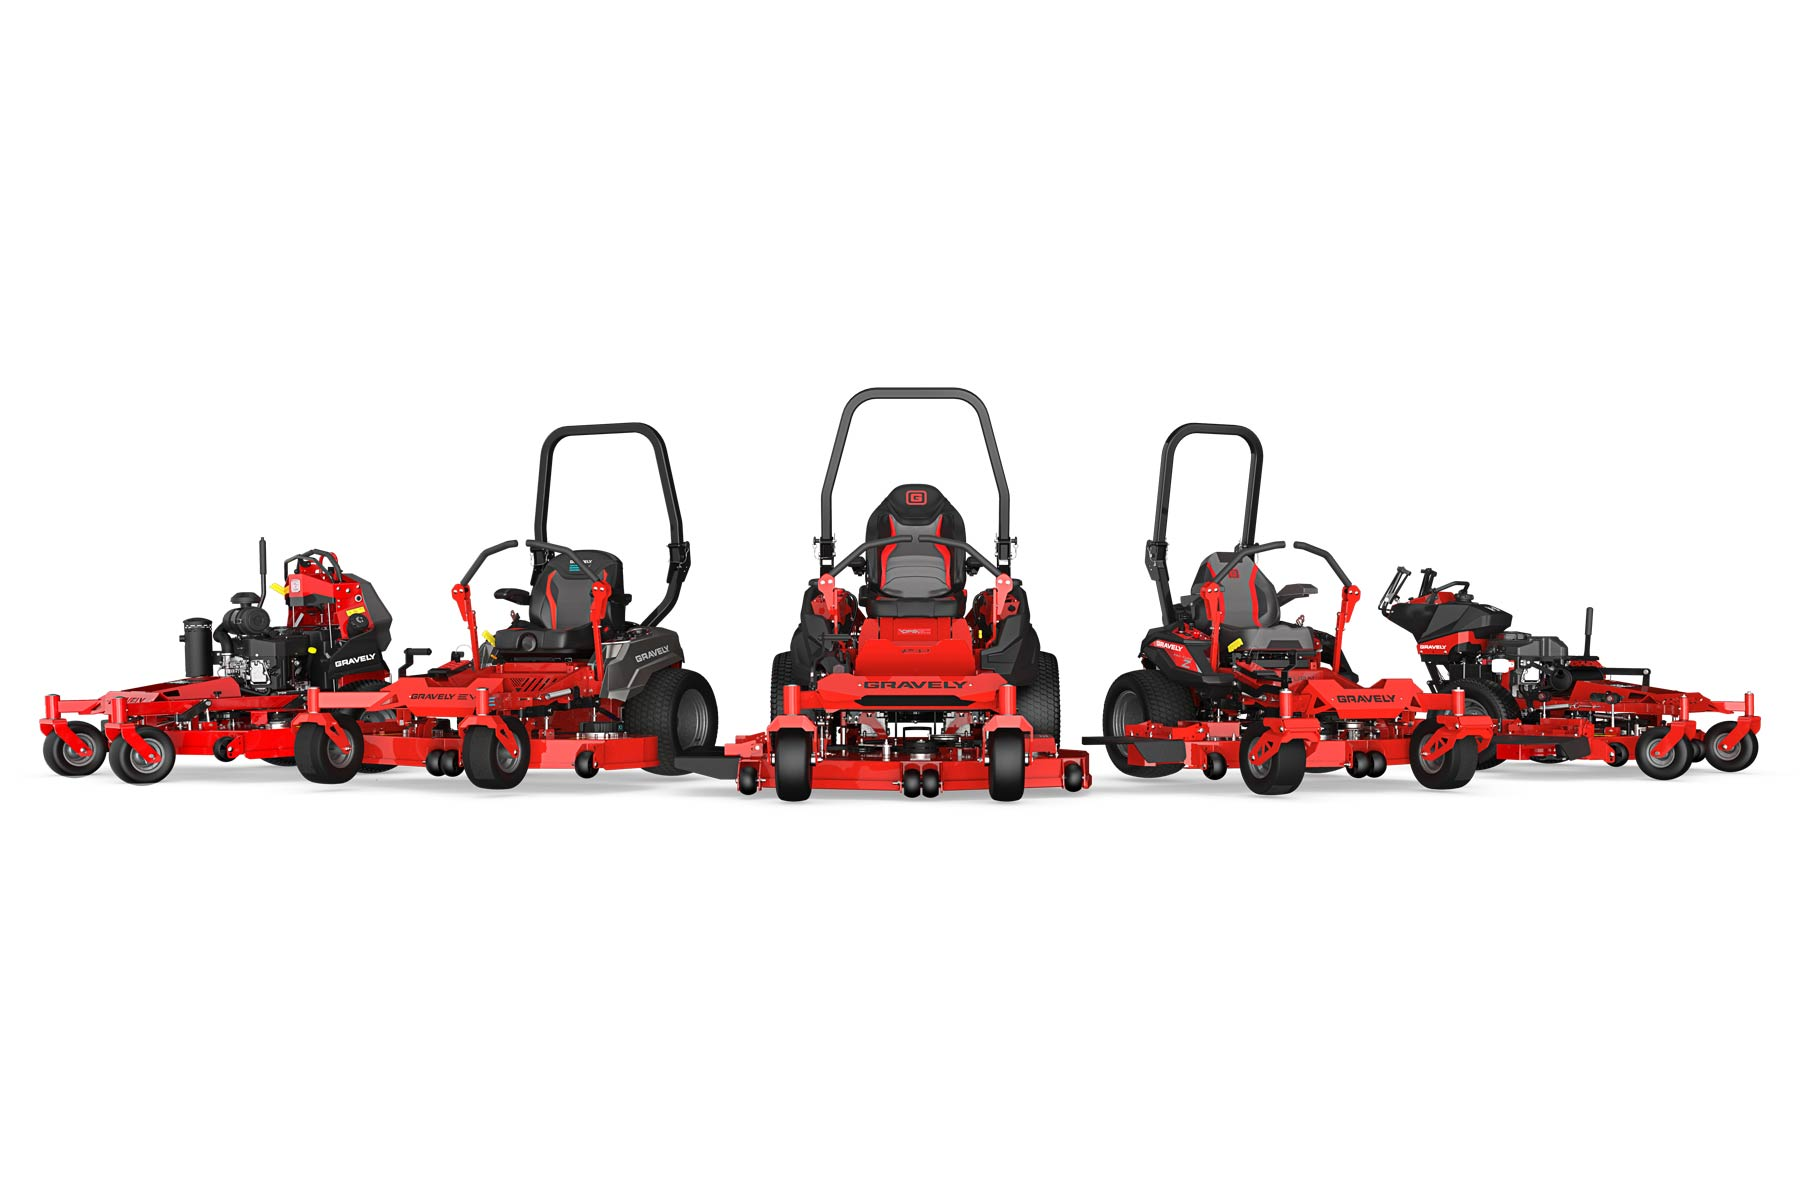 Gravely Unveils Innovative Commercial and Residential Mowers